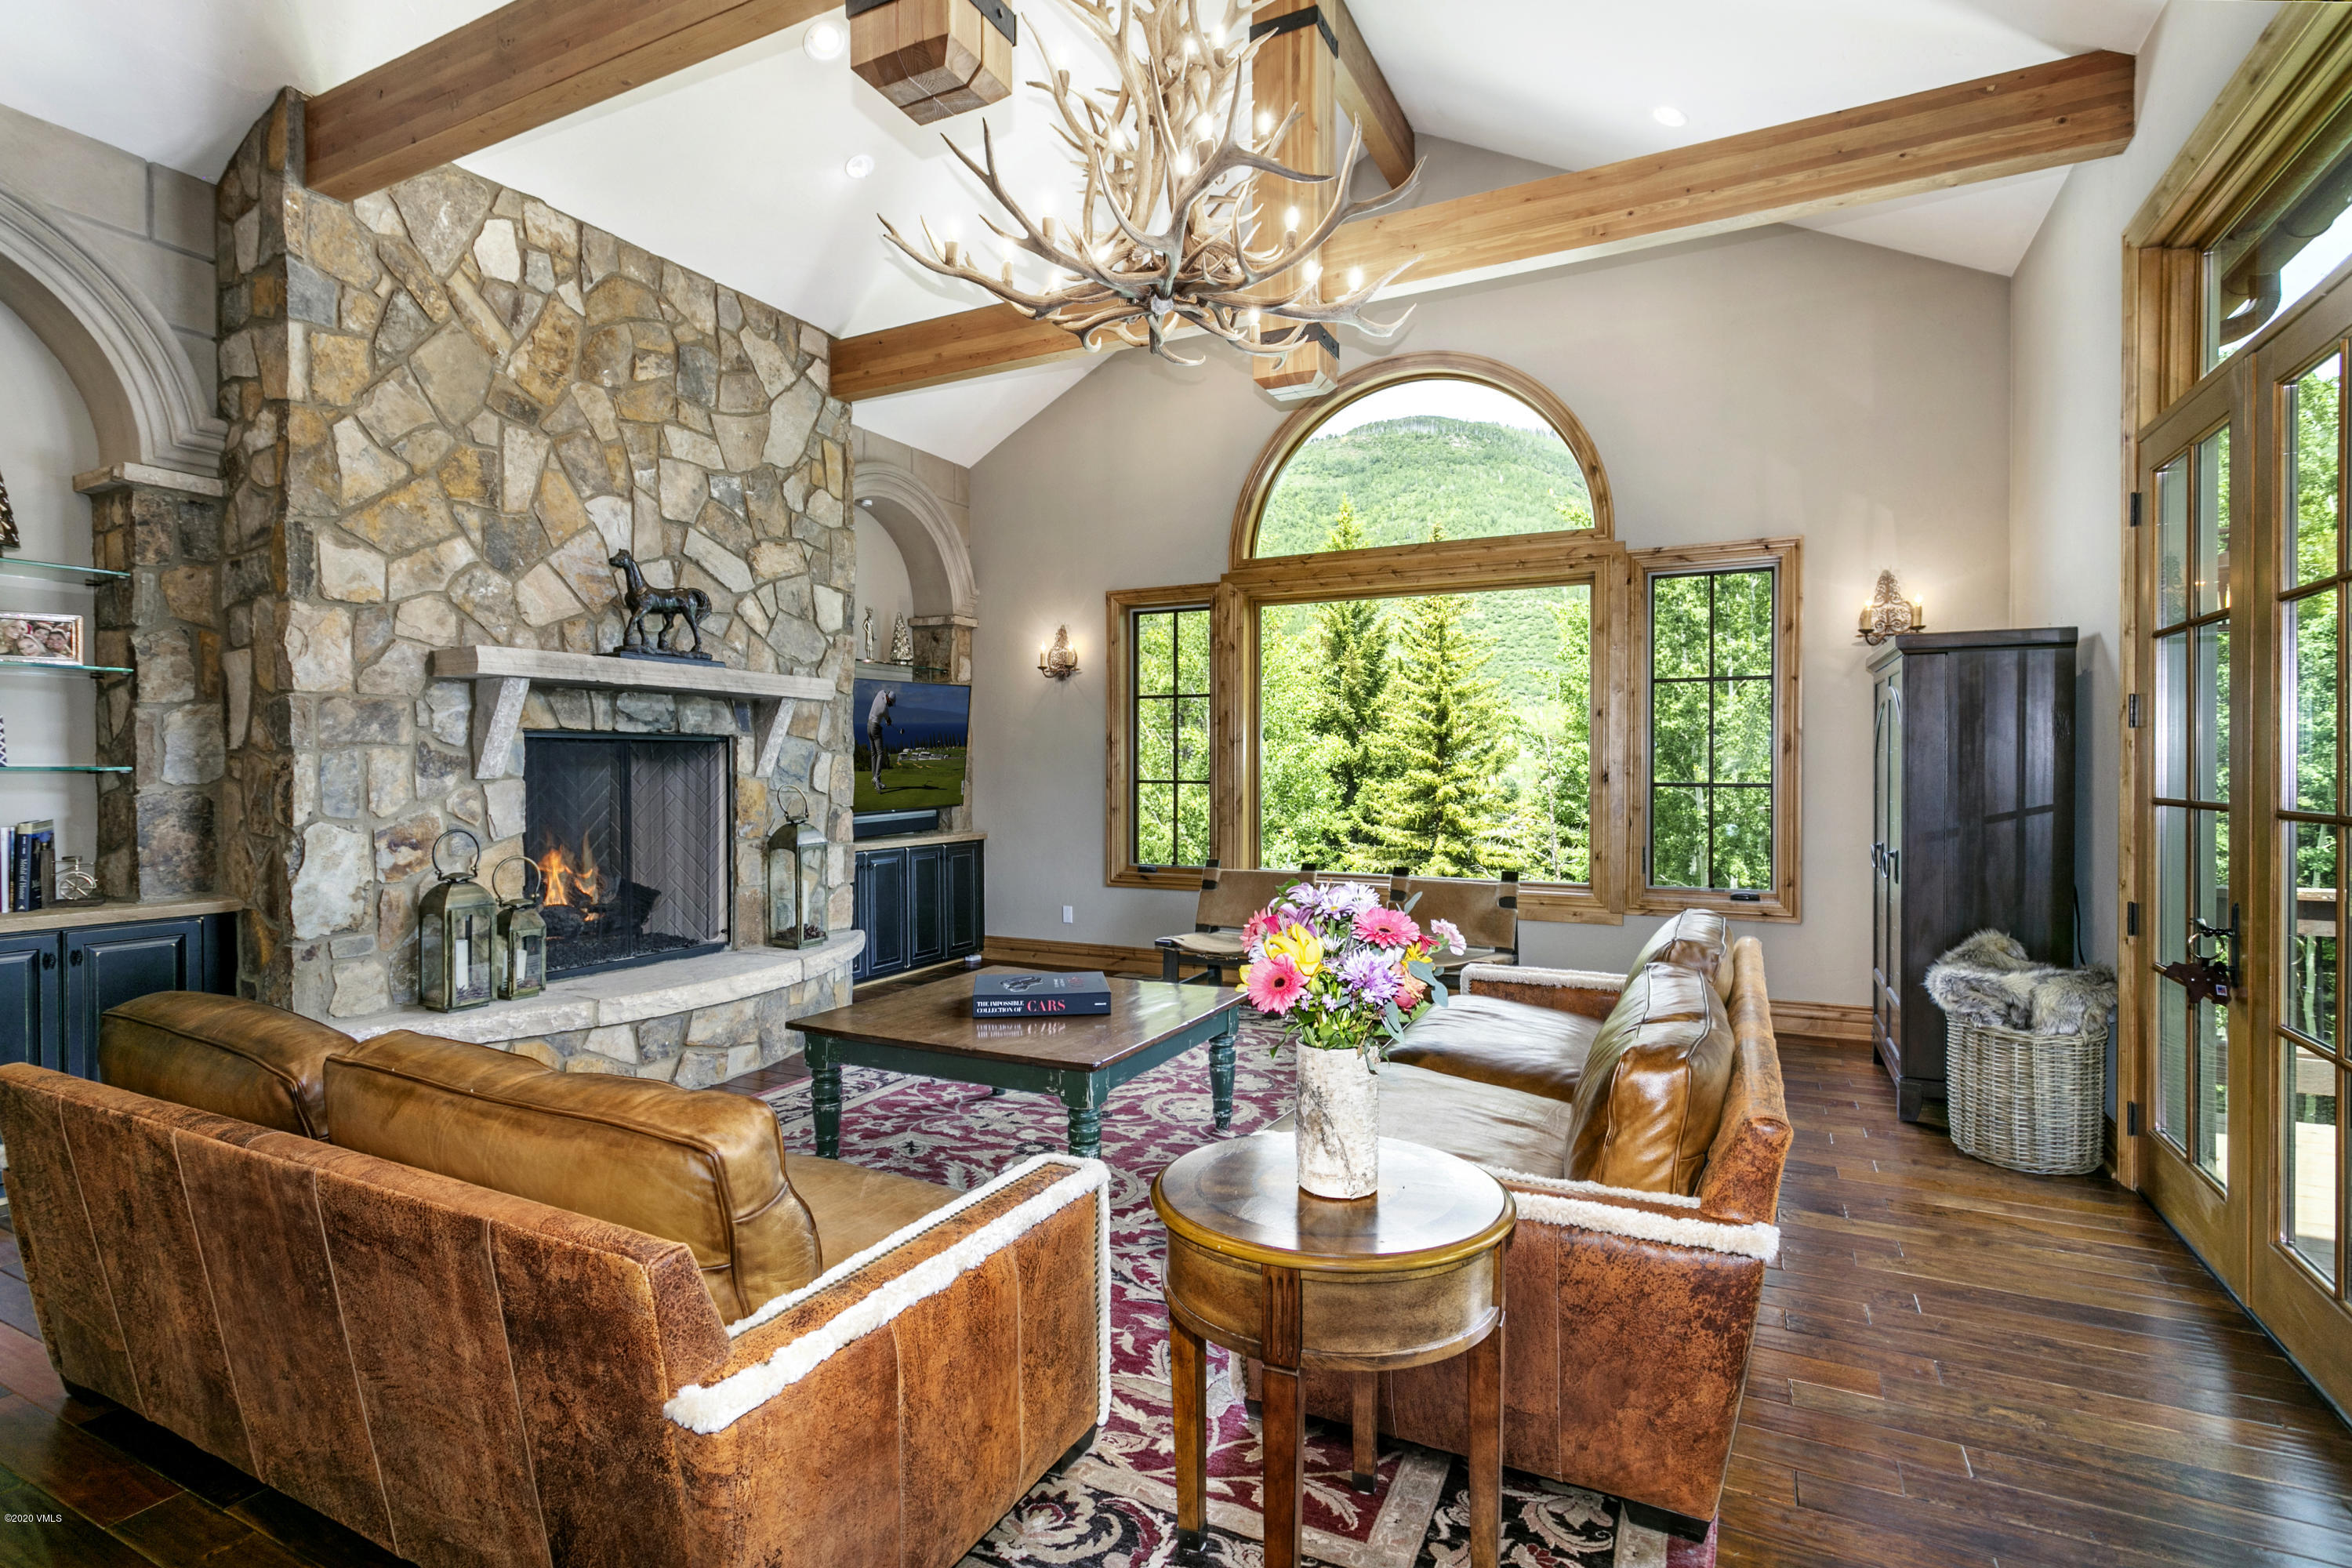 A stately masterpiece on a premier homesite in the heart of vibrant Vail, Colorado!  Classic Alpine style and meticulous detail in a pristine setting create a home in which you will be as proud to entertain as you are comfortable to reside.  This exceptional location offers the serenity, the wildlife, and the pristine mountain setting of a home built deep in the Colorado Rockies, yet it is merely minutes from the world class skiing, shopping, dining and more.----------   This perfect primary residence or weekend escape is classically and impeccably designed, with sweeping views of the endless adventure that abounds.  Luxury features include timeless feel with 6-bedrooms, family room, wine cellar, air-conditioning, elevator and 2-car garage. Live your best life now. ----------Discover Vail, Colorado and explore the charm of this luxury alpine escape with overwhelming natural beauty which presents an incomparable venue for mountain living, year-round recreation and cherished family tradition.